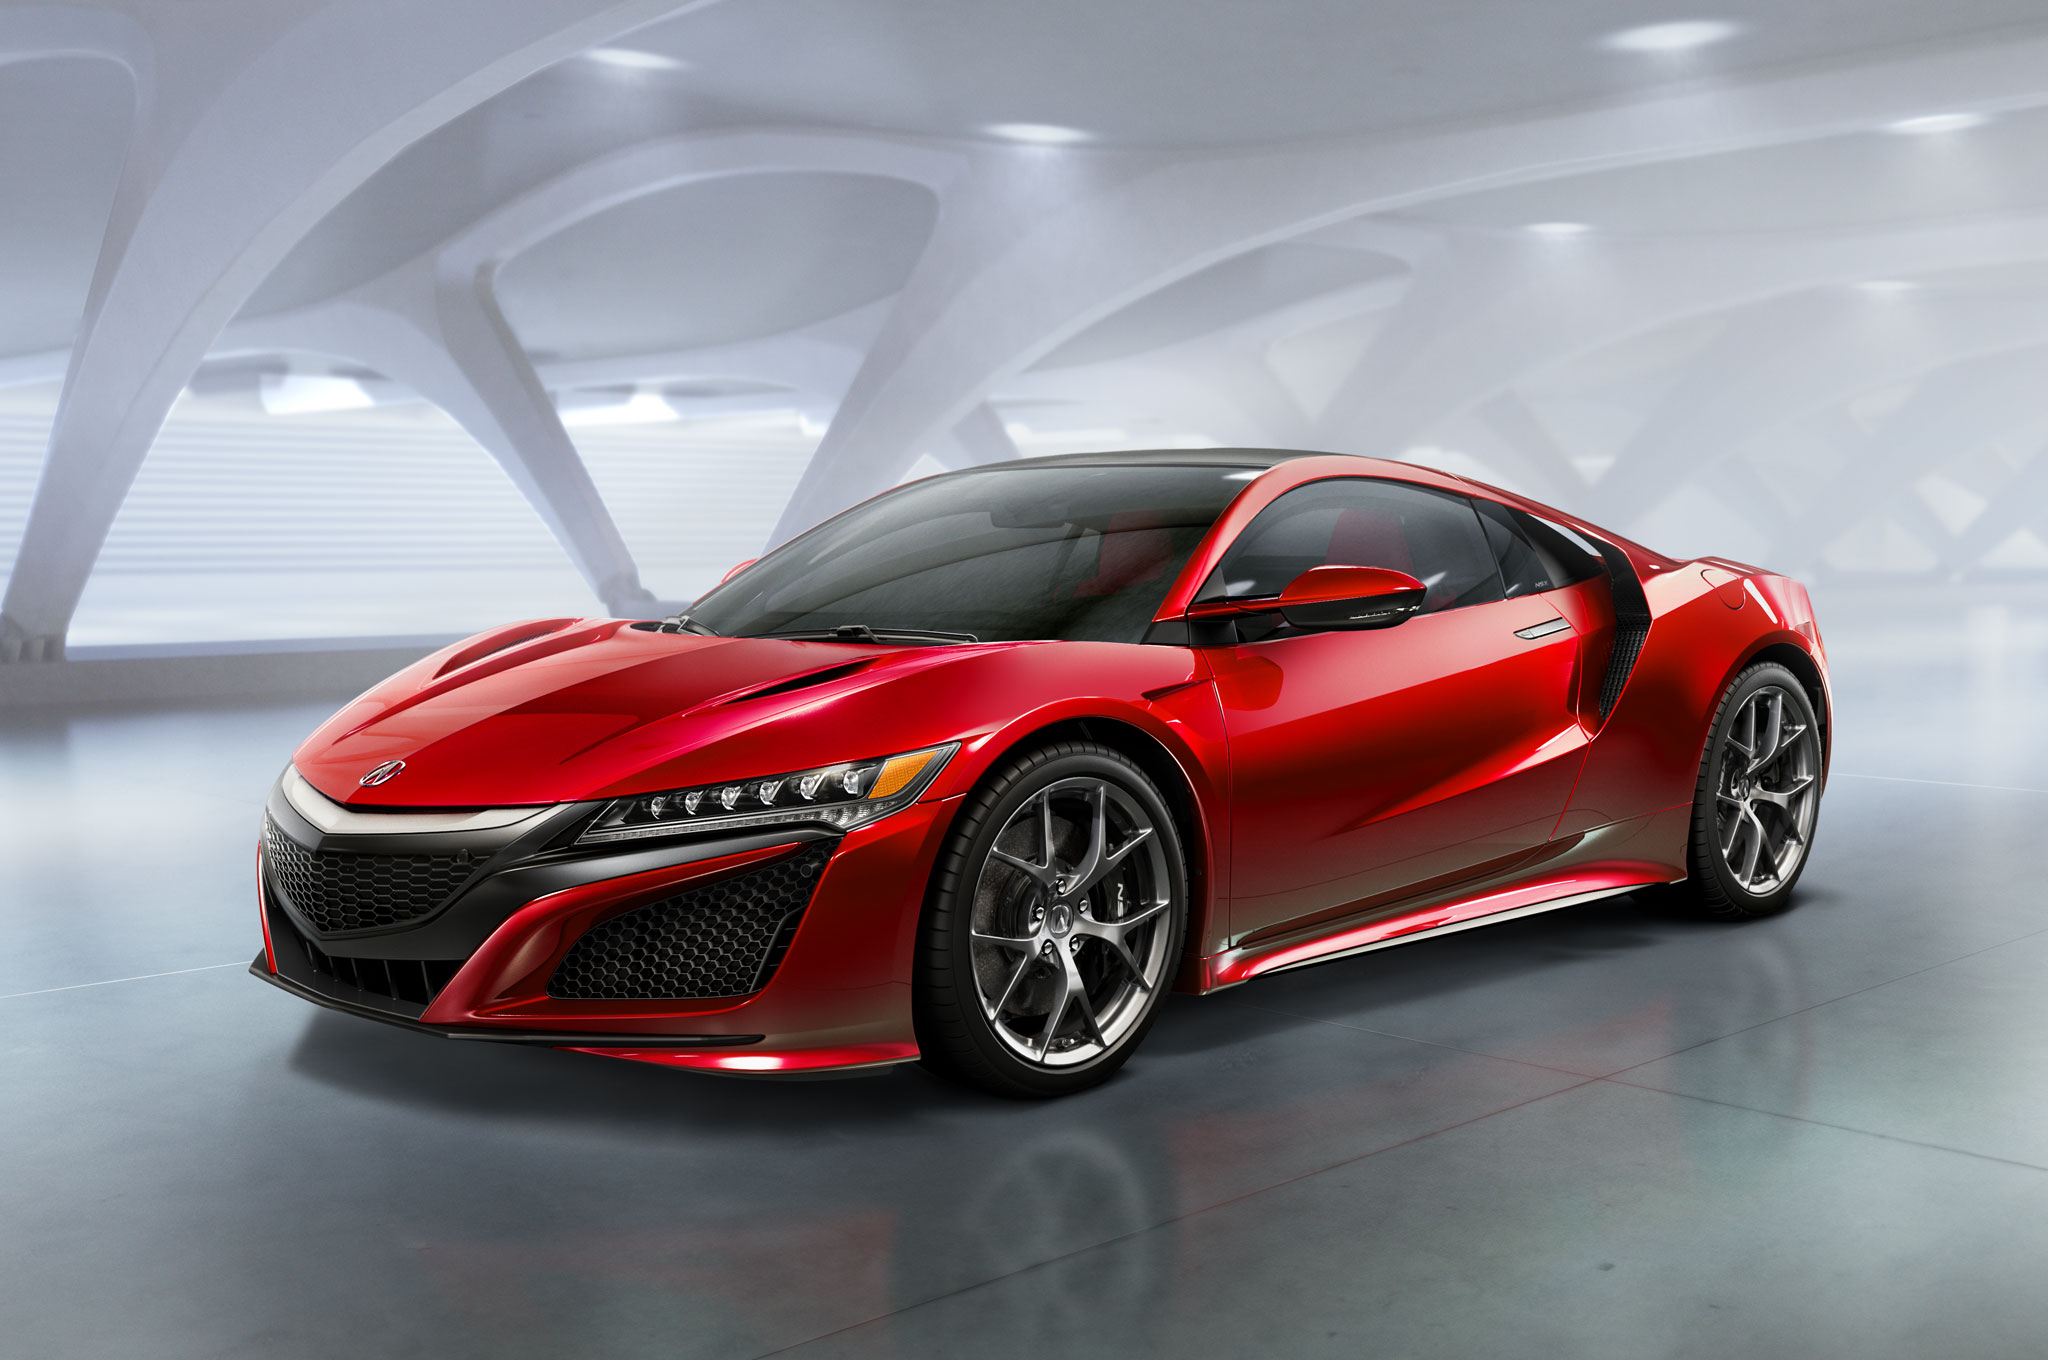 2016 Acura Nsx The Game Changer